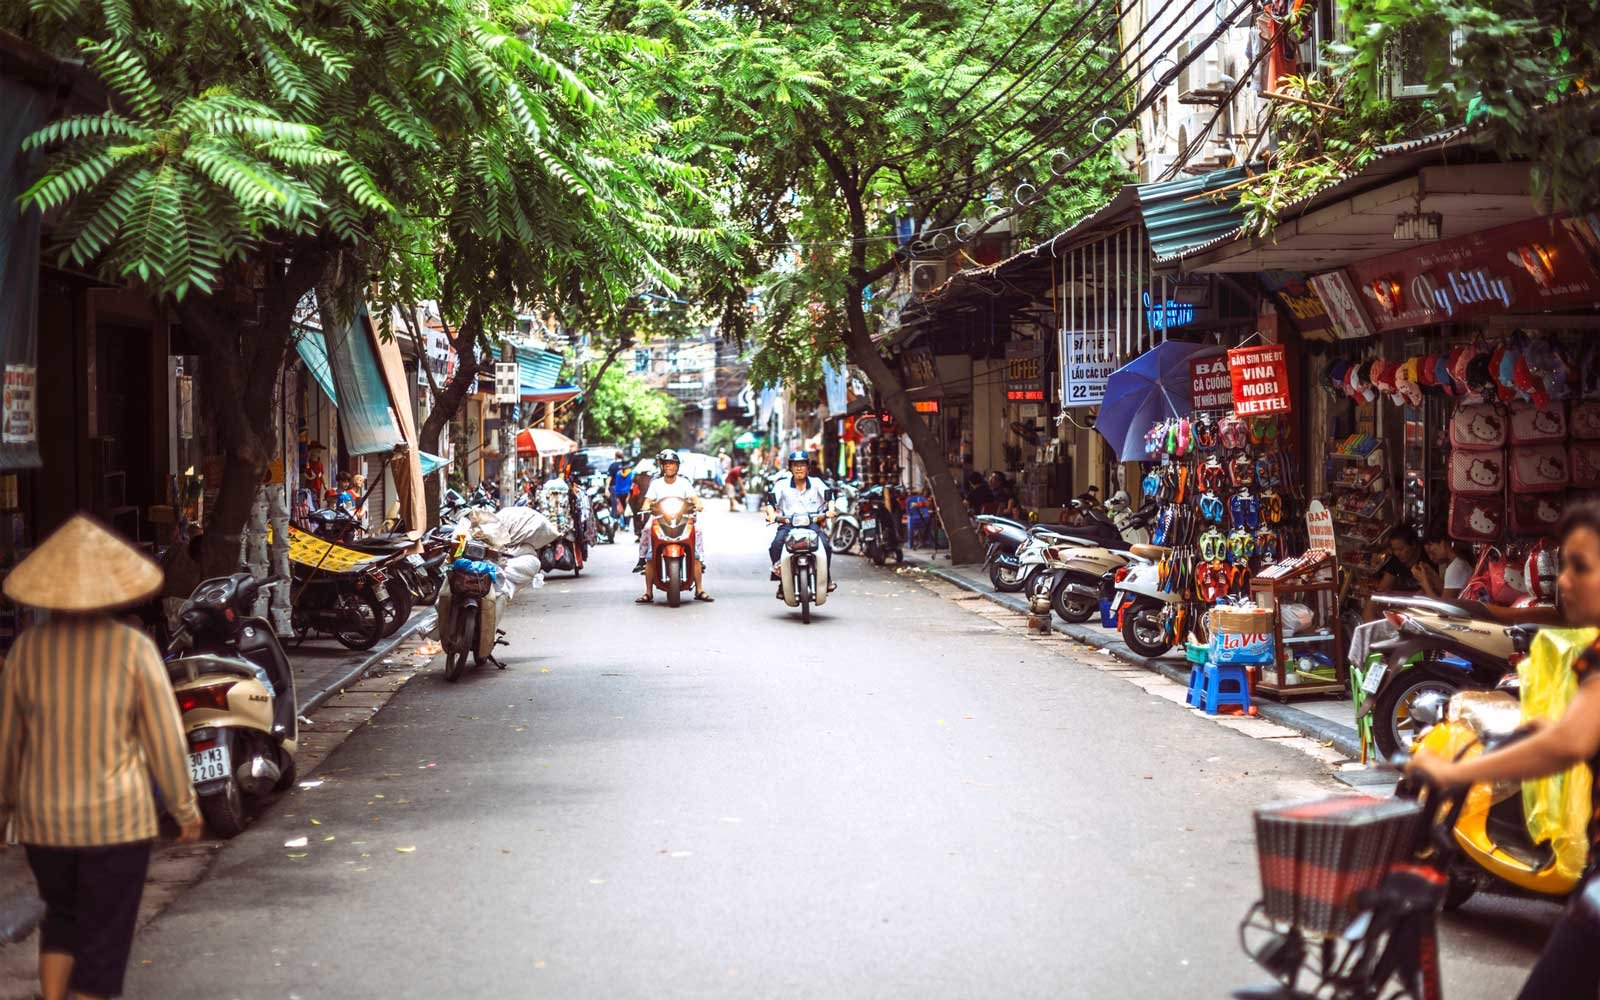 Hanoi listed in Top 25 global destinations by TripAdvisor